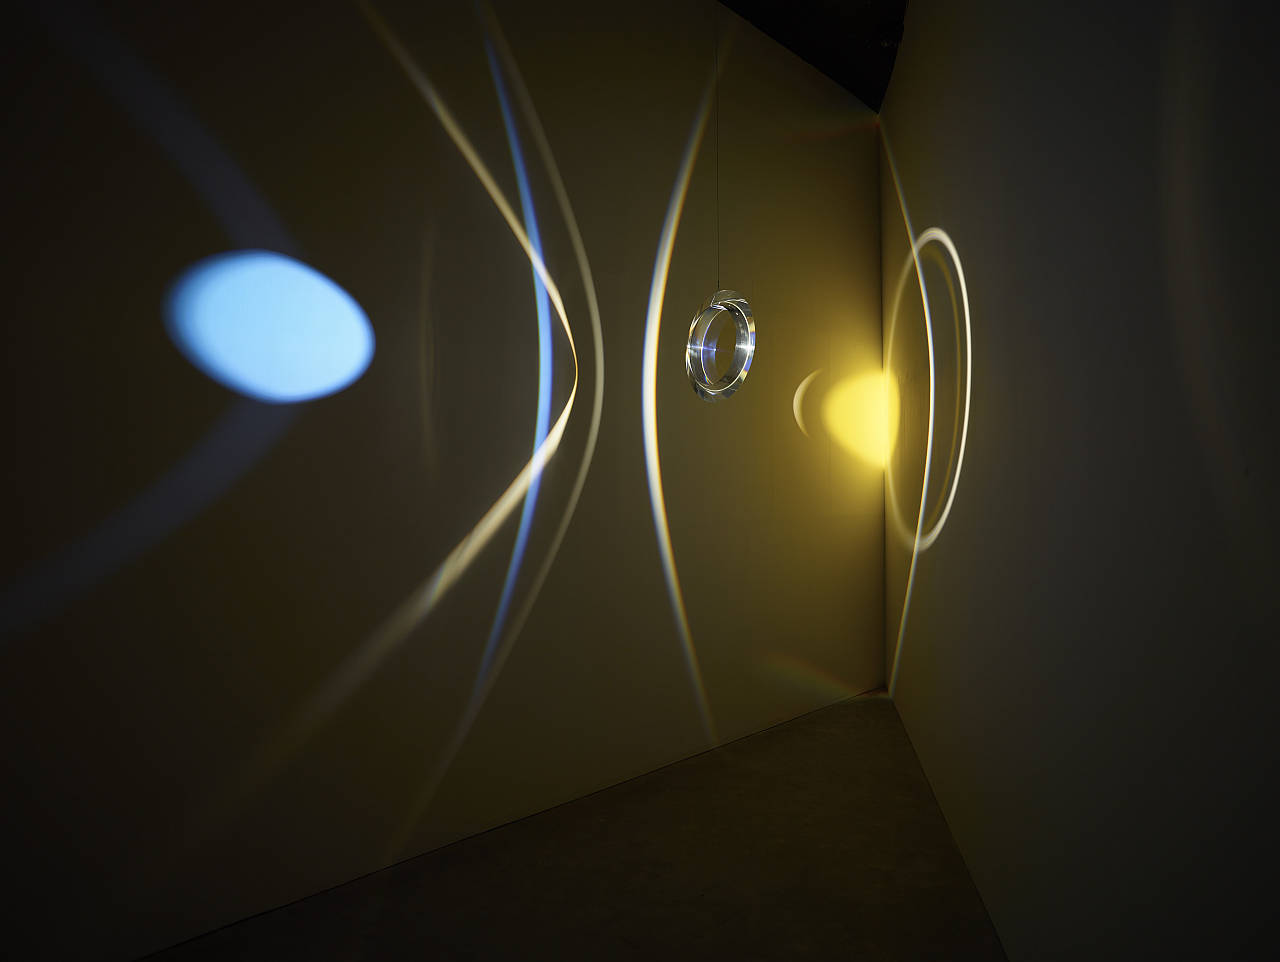 Olafur Eliasson - Your museum primer, 2014 - Acrylic prism ring, colour effect-filter glass (yellow), spotlight, LED light, motor, wire - Leeum, Samsung Museum of Modern Art, Seoul, 2016 : Photo Hyunsoo Kim, Courtesy of the artist; Tanya Bonakdar Gallery, New York; neugerriemschneider, Berlin © Olafur Eliasson